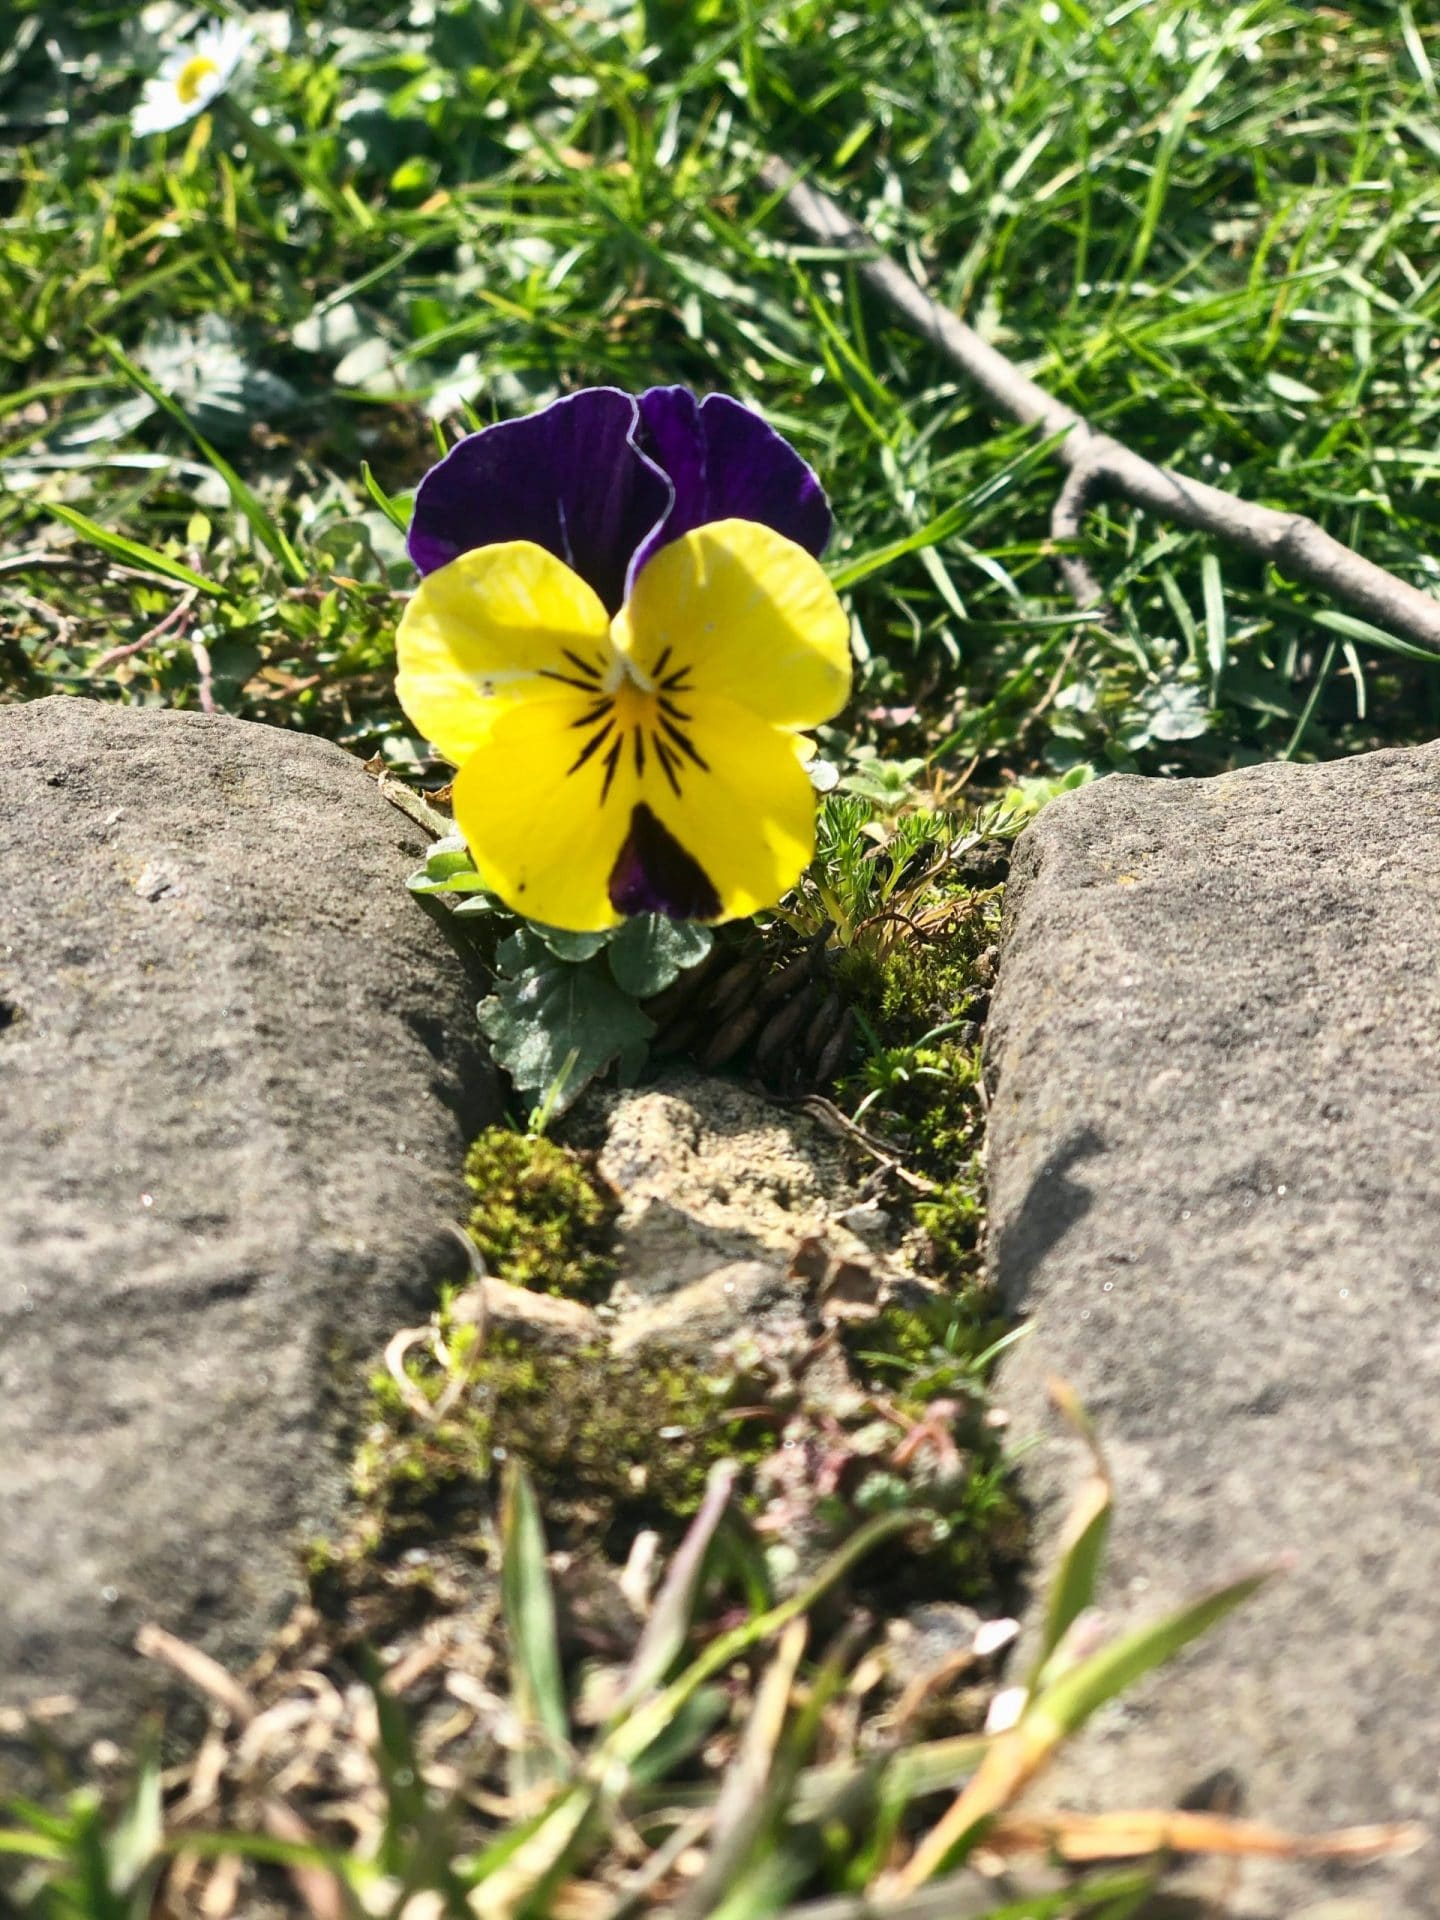 cheer someone up during lockdown: a small yellow flower and a small purple flower in the grass between two stone paving flags